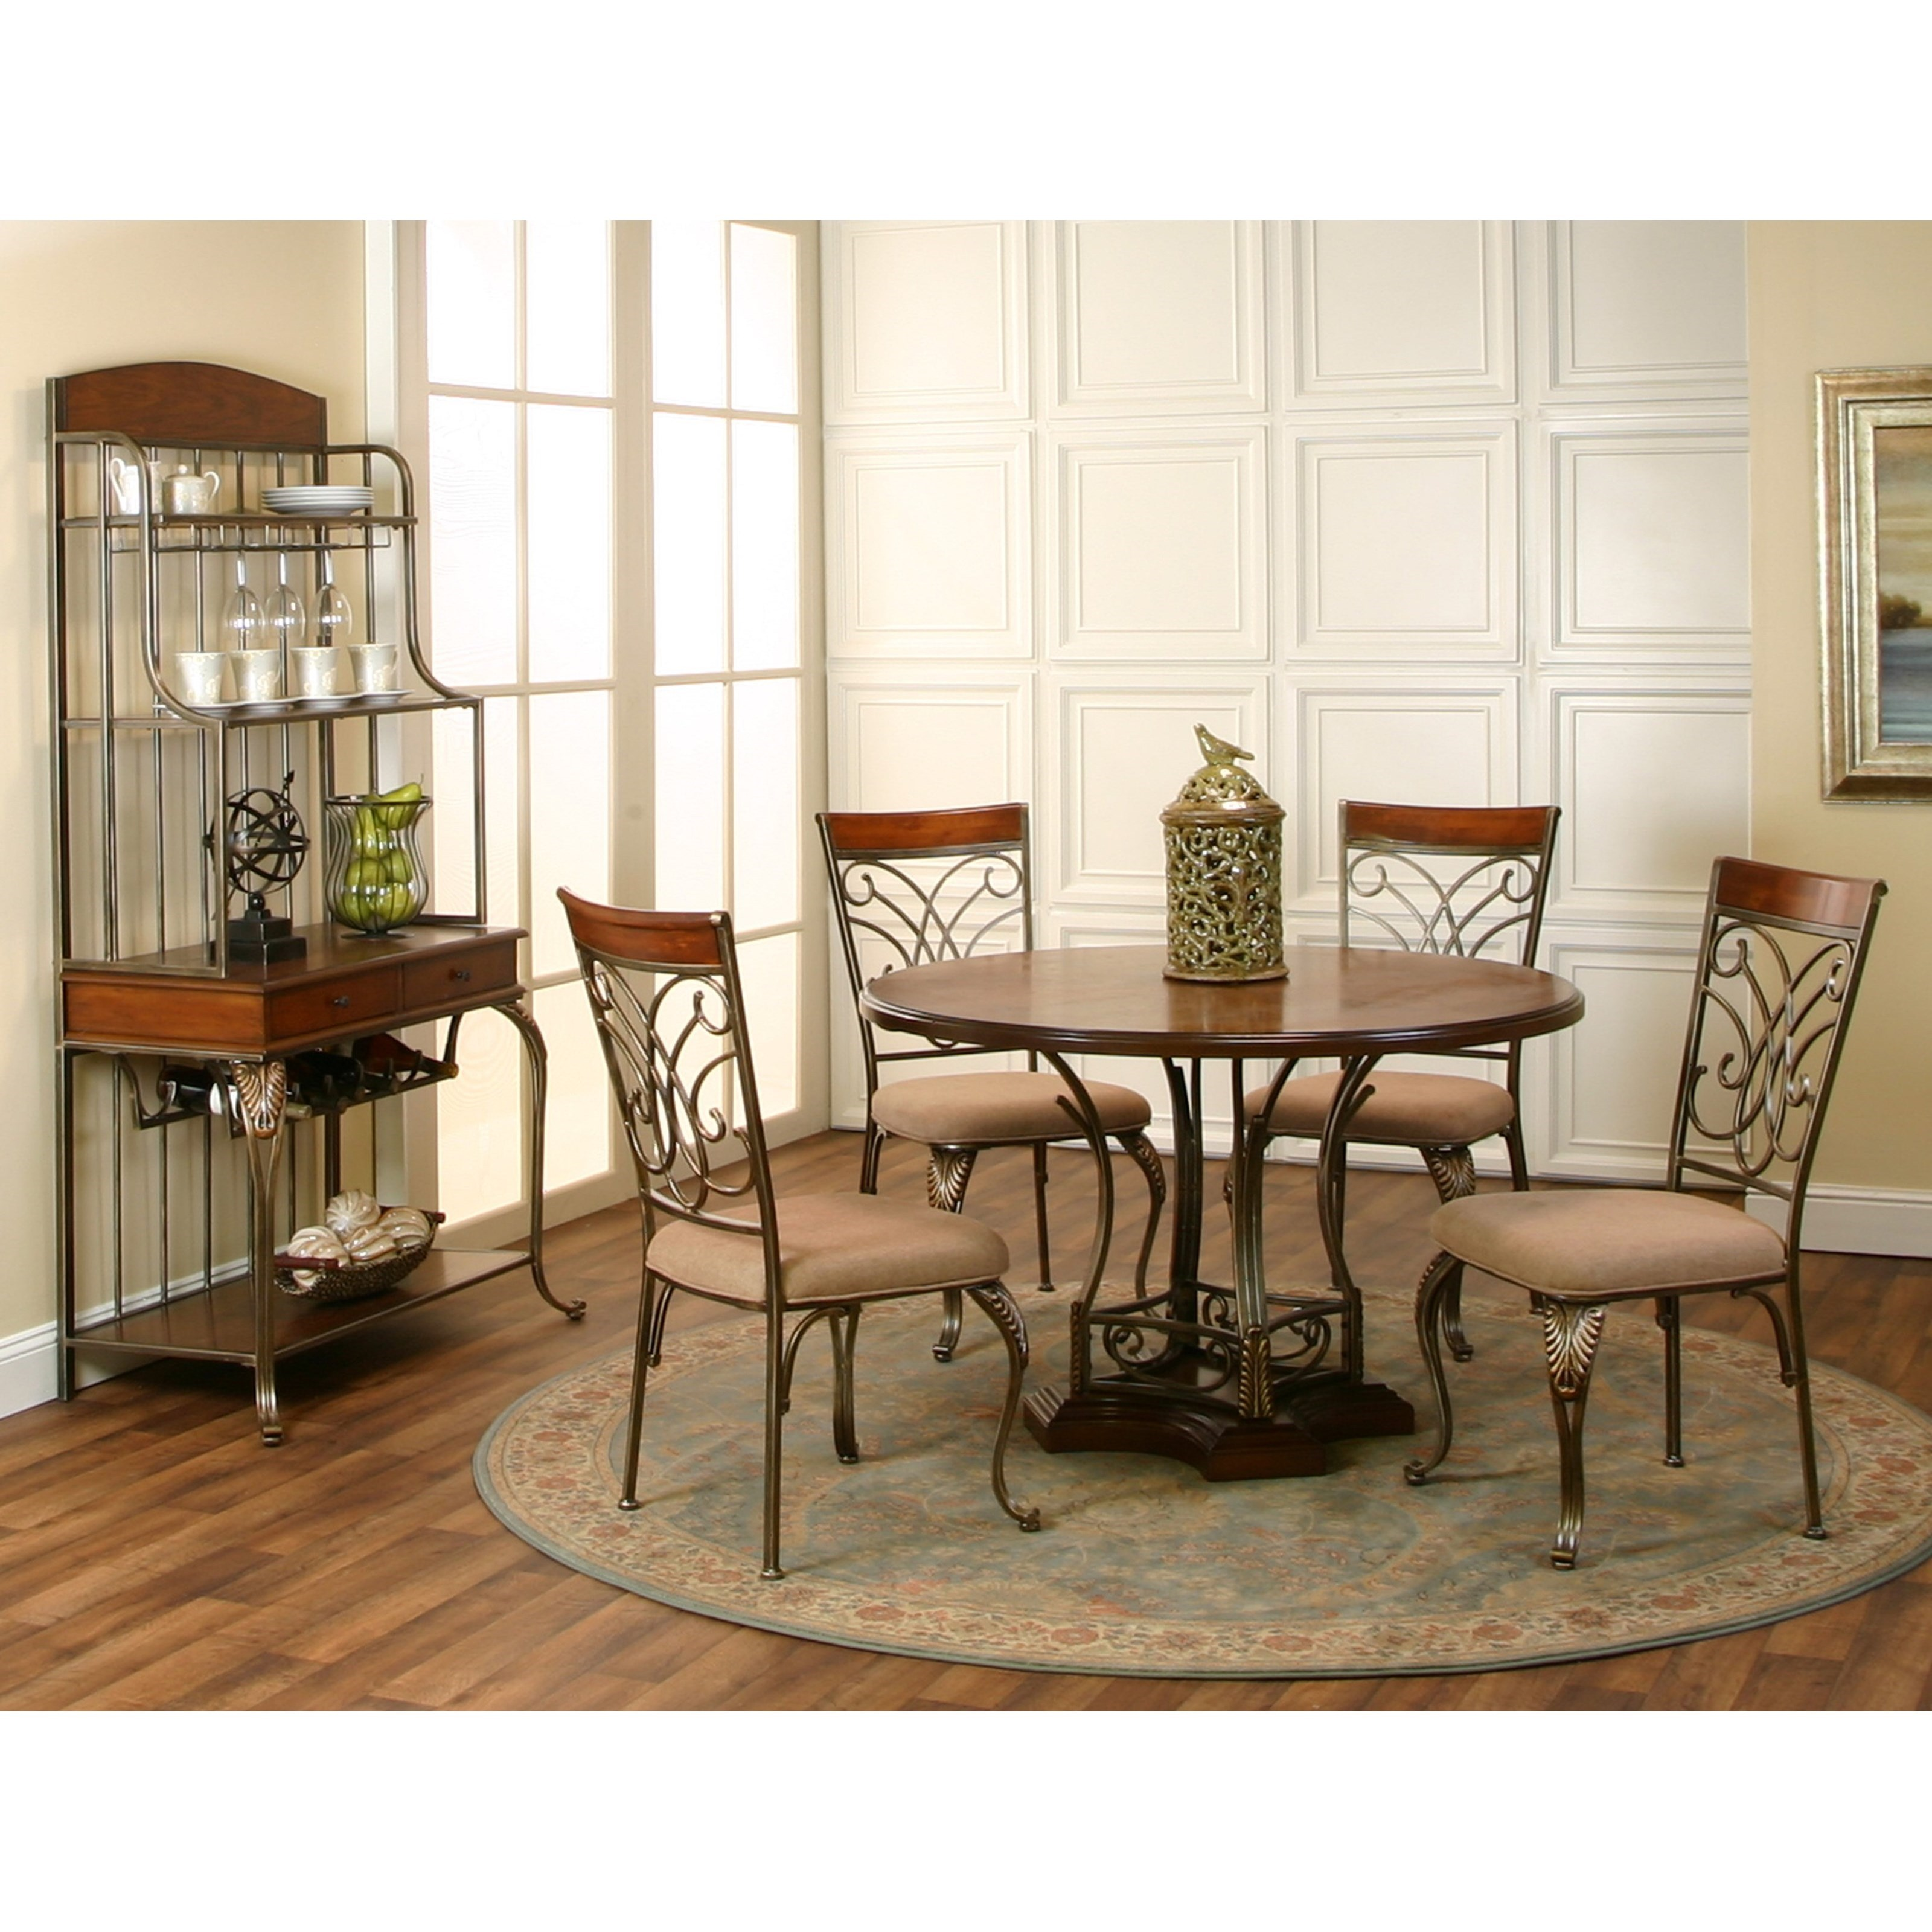 Cramco inc harlow casual dining room group nassau for Casual dining room furniture